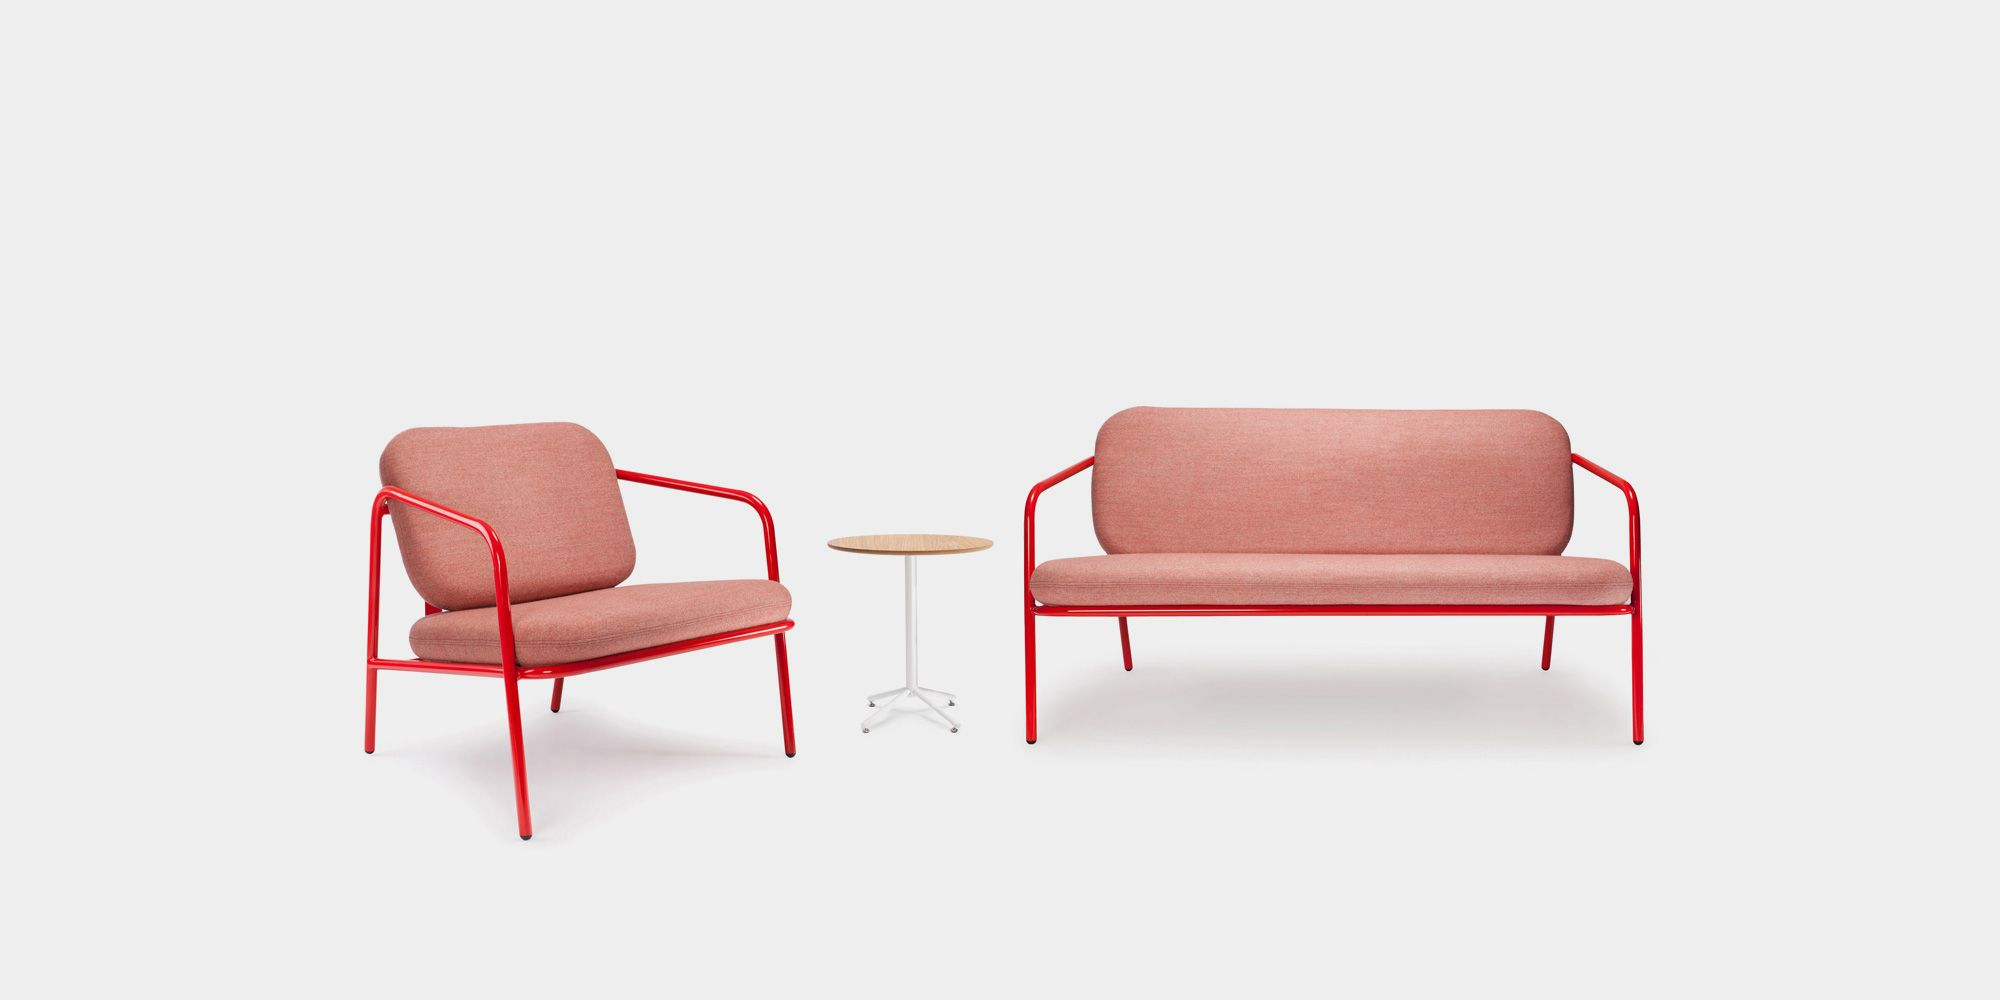 Working Girl Lounge Chair and Sofa Designed by David Irwin for Deadgood The Working Girlu0026rsquo;s aesthetic combines simple utilitarian styling with a robust ...  sc 1 th 159 & Working_Girl_Lounge05B.jpg | furniture | Pinterest | Commercial ...